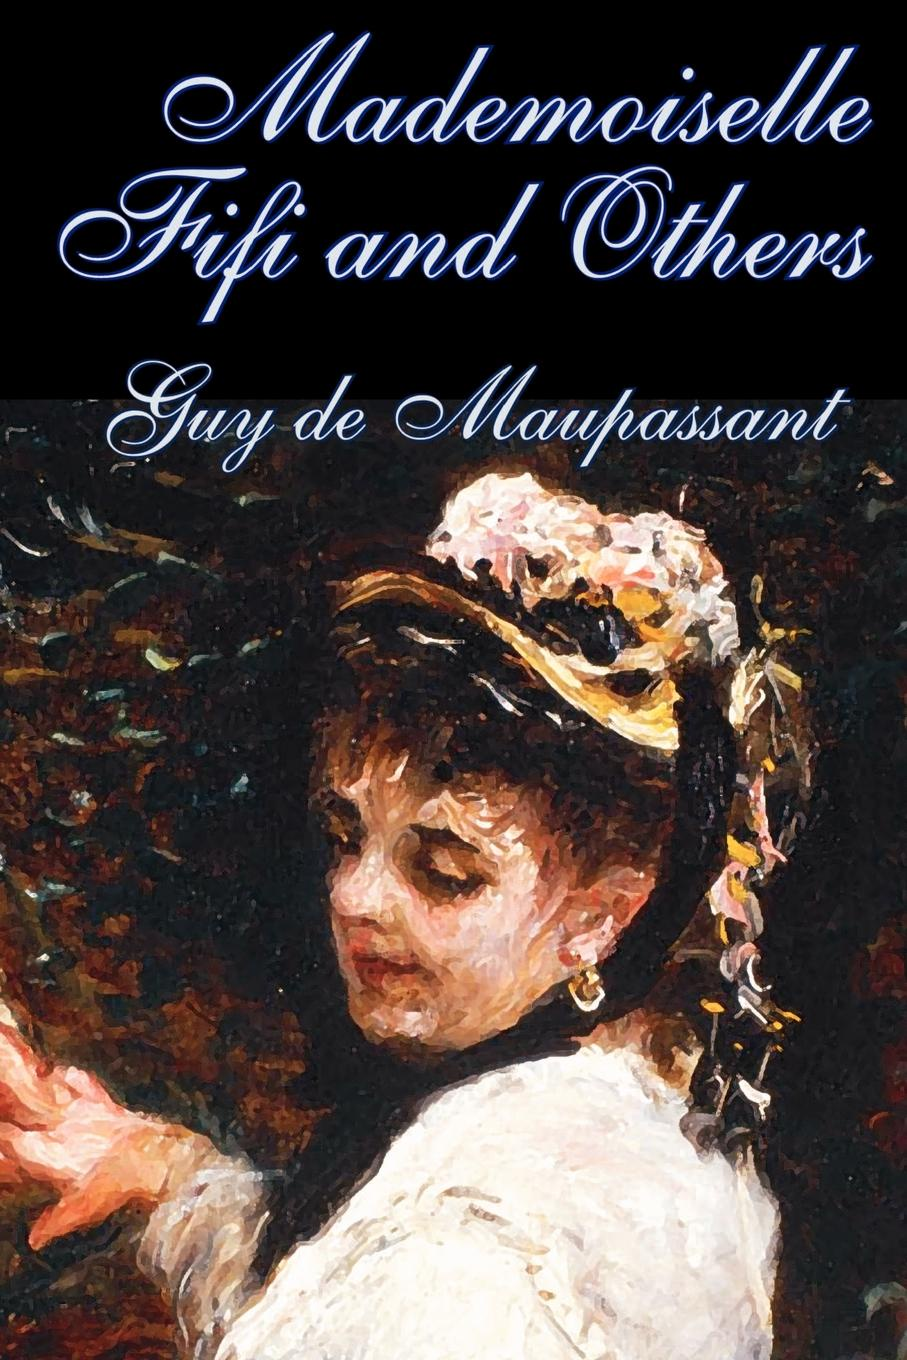 Guy de Maupassant Mademoiselle Fifi and Others by Guy de Maupassant, Fiction, Classics, Short Stories guy de maupassant mademoiselle fifi and others by guy de maupassant fiction classics short stories